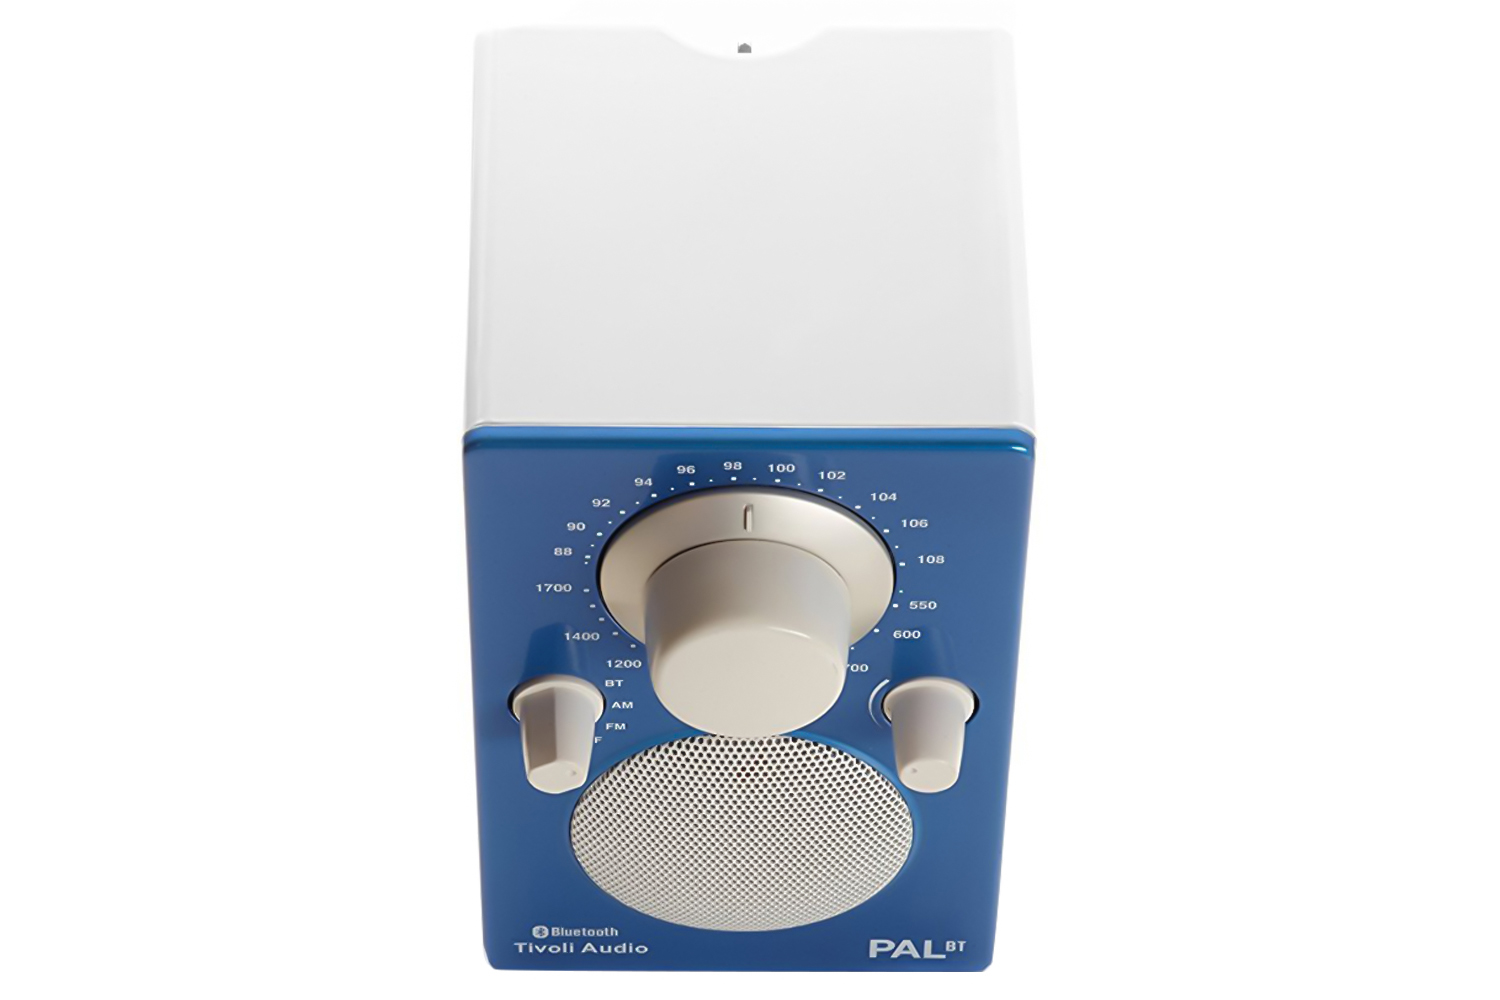 Tivoli Radio Pal Tivoli Audio Pal Bt Bluetooth Portable Am Fm Radio Blue